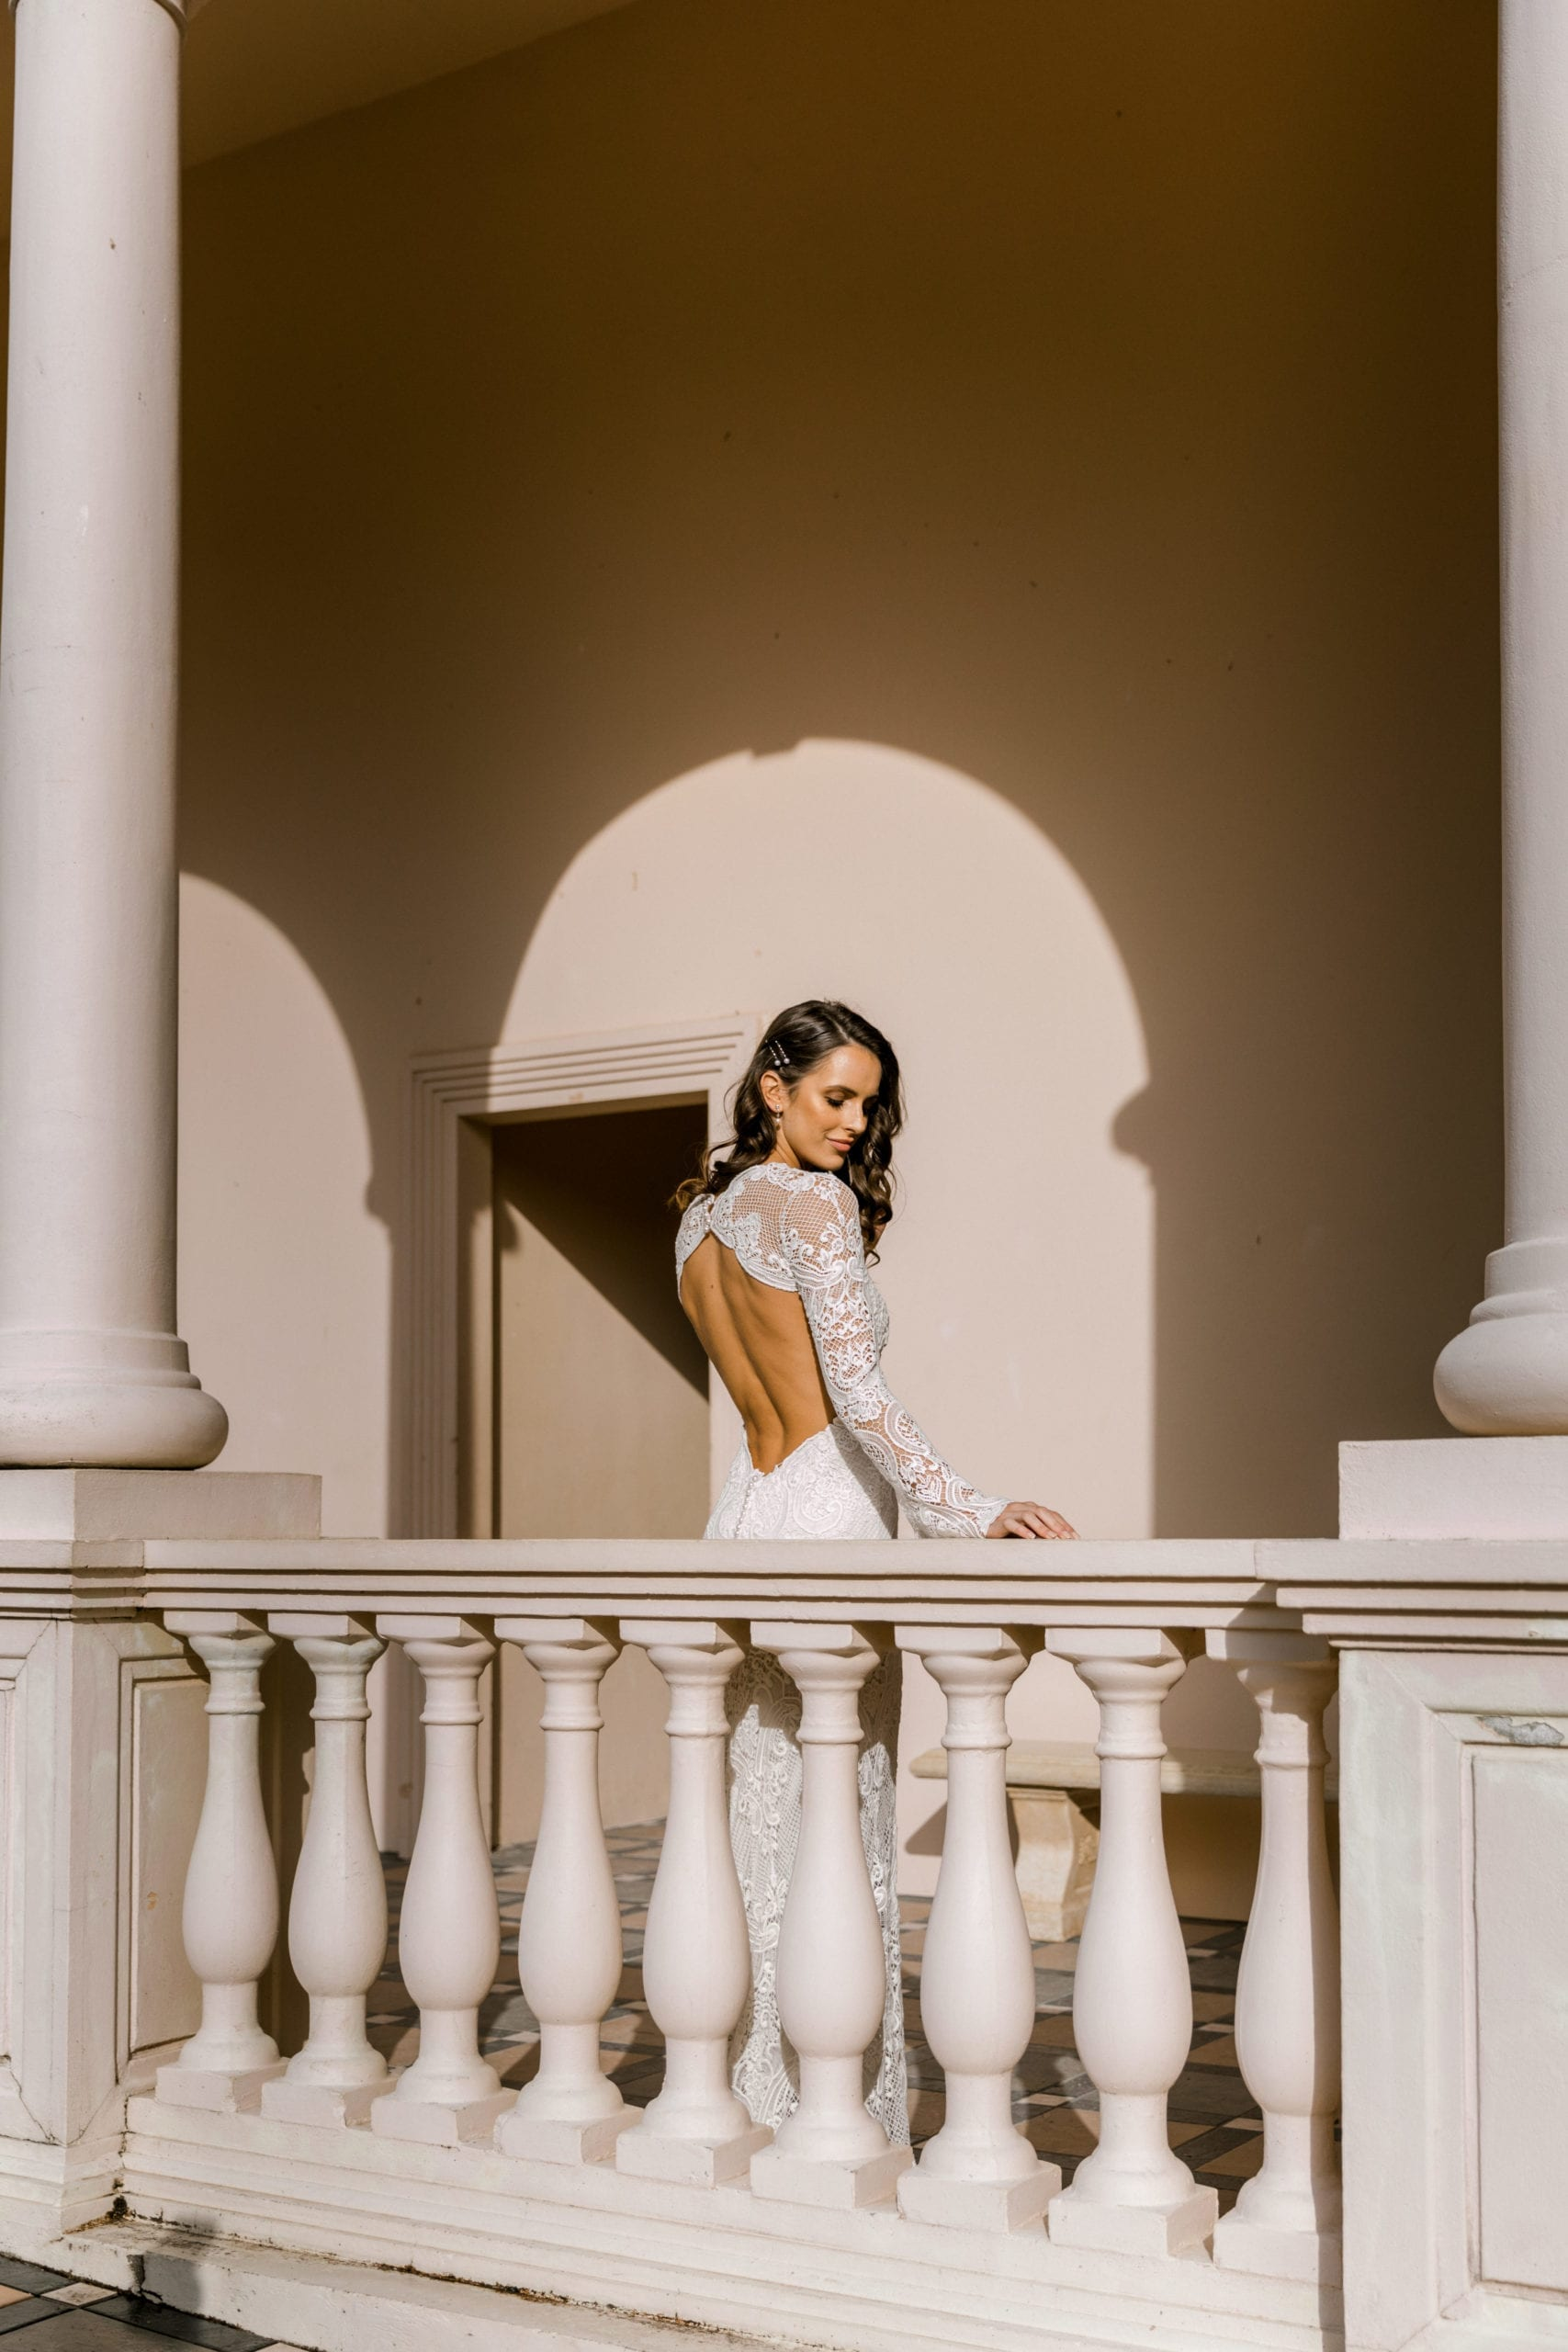 Model wearing Vinka Design Sabine Wedding Dress, a French Crochet Lace Wedding Gown over balcony under archway